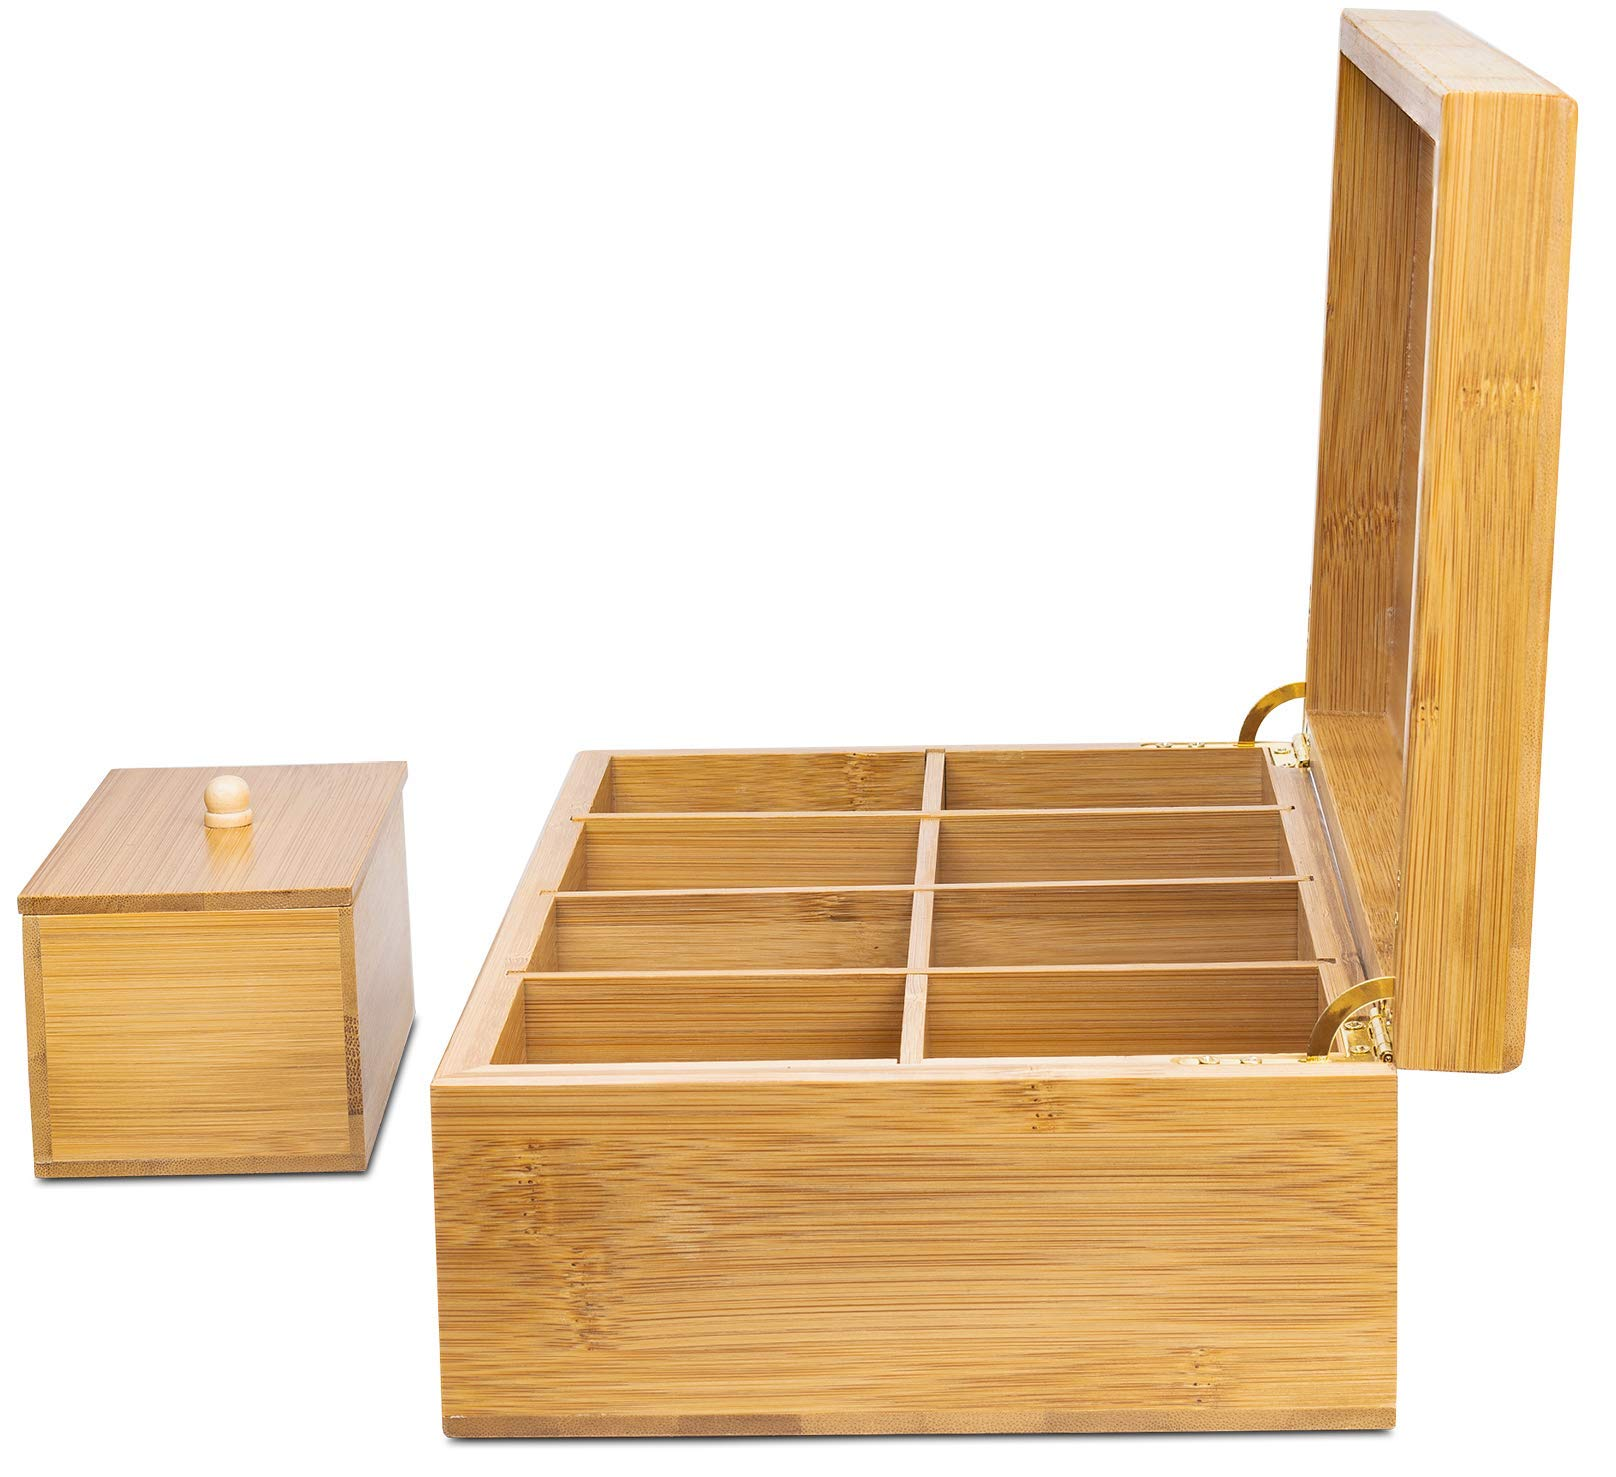 Lyevon Tea Storage Organizer Bamboo Chest Box with 8 Adjustable Compartments for Assorted Tea Bags or Spices -holds 125 Tea Bags by Lyevon (Image #6)